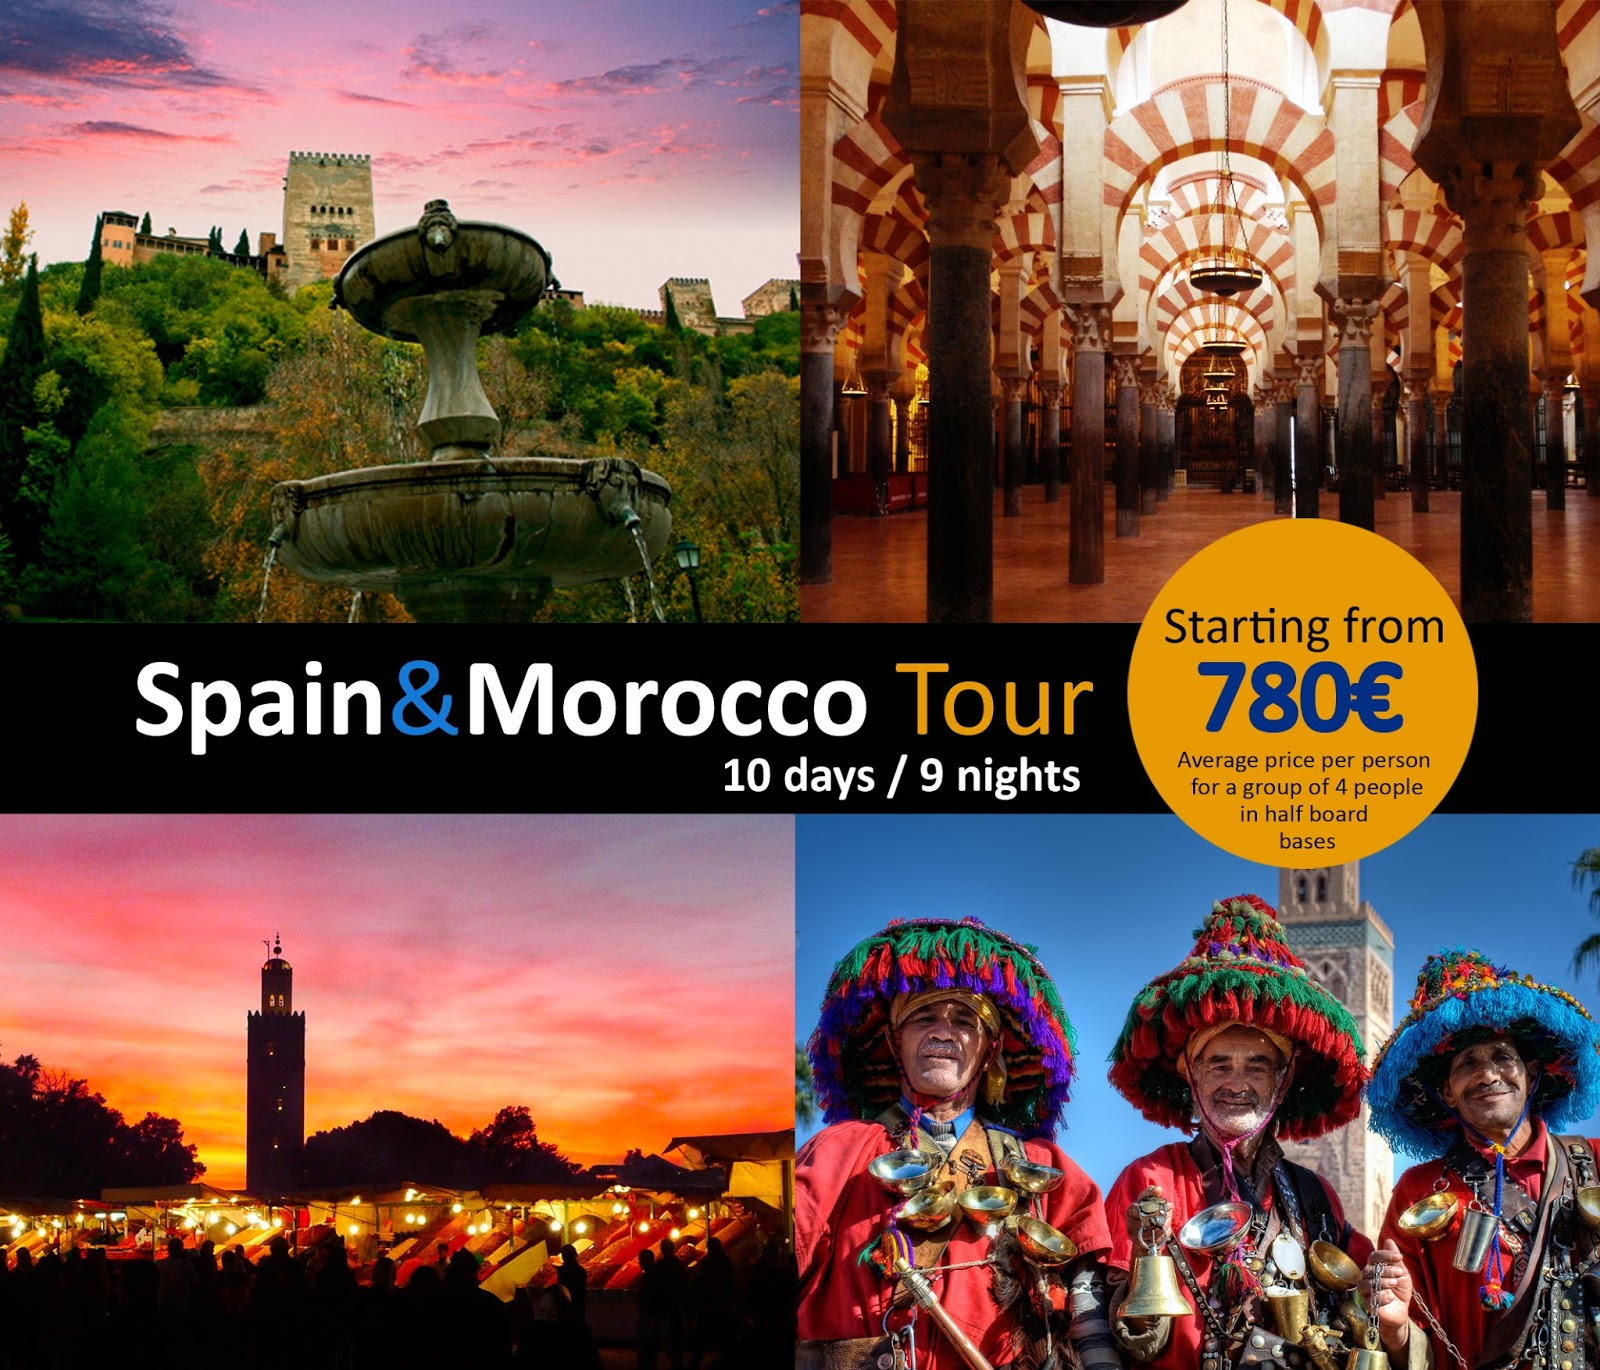 11ea134889 Travel the halal way and discover Spain   Morocco in this 9 days tour ~  Alhamratour-Travel the halal way!